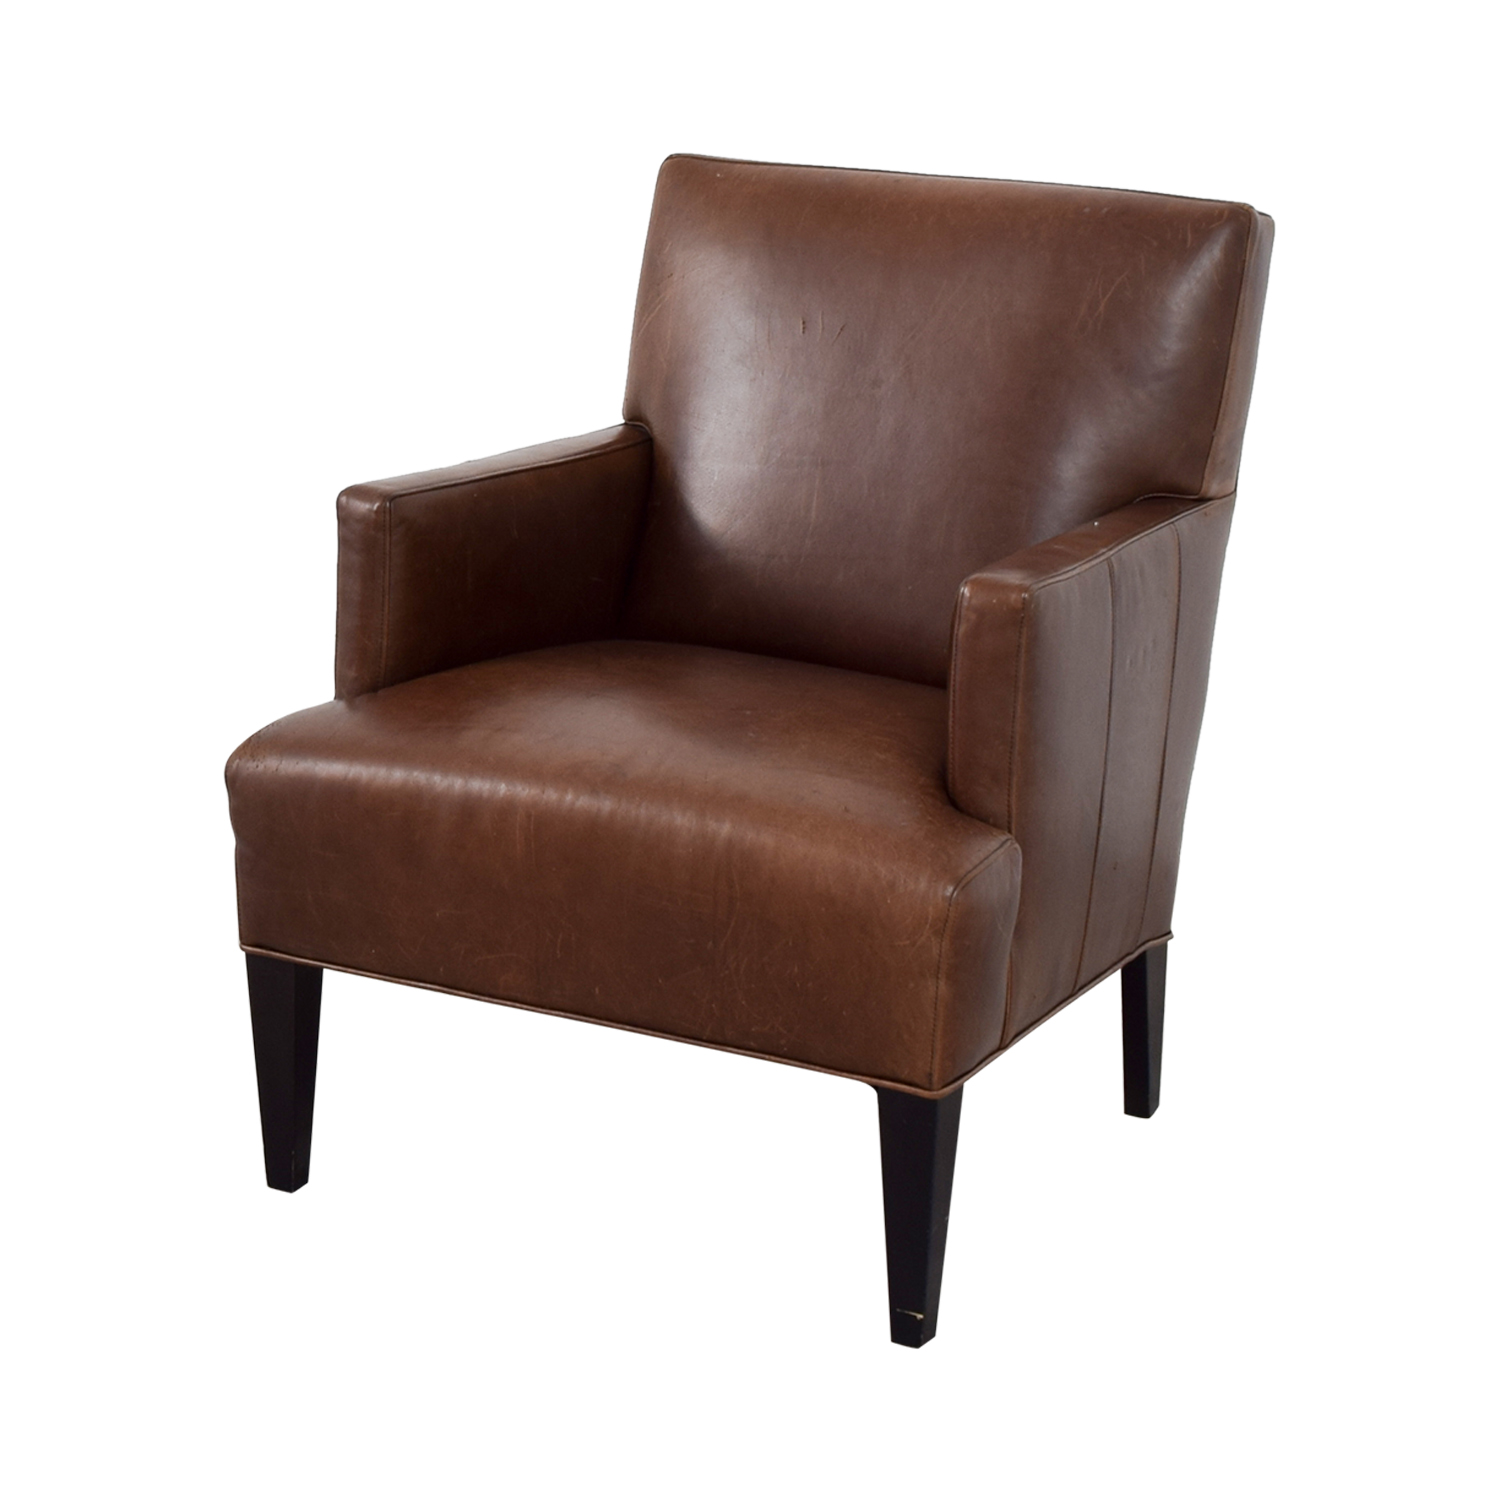 Crate & Barrel Brown Leather Arm Chair Crate & Barrel